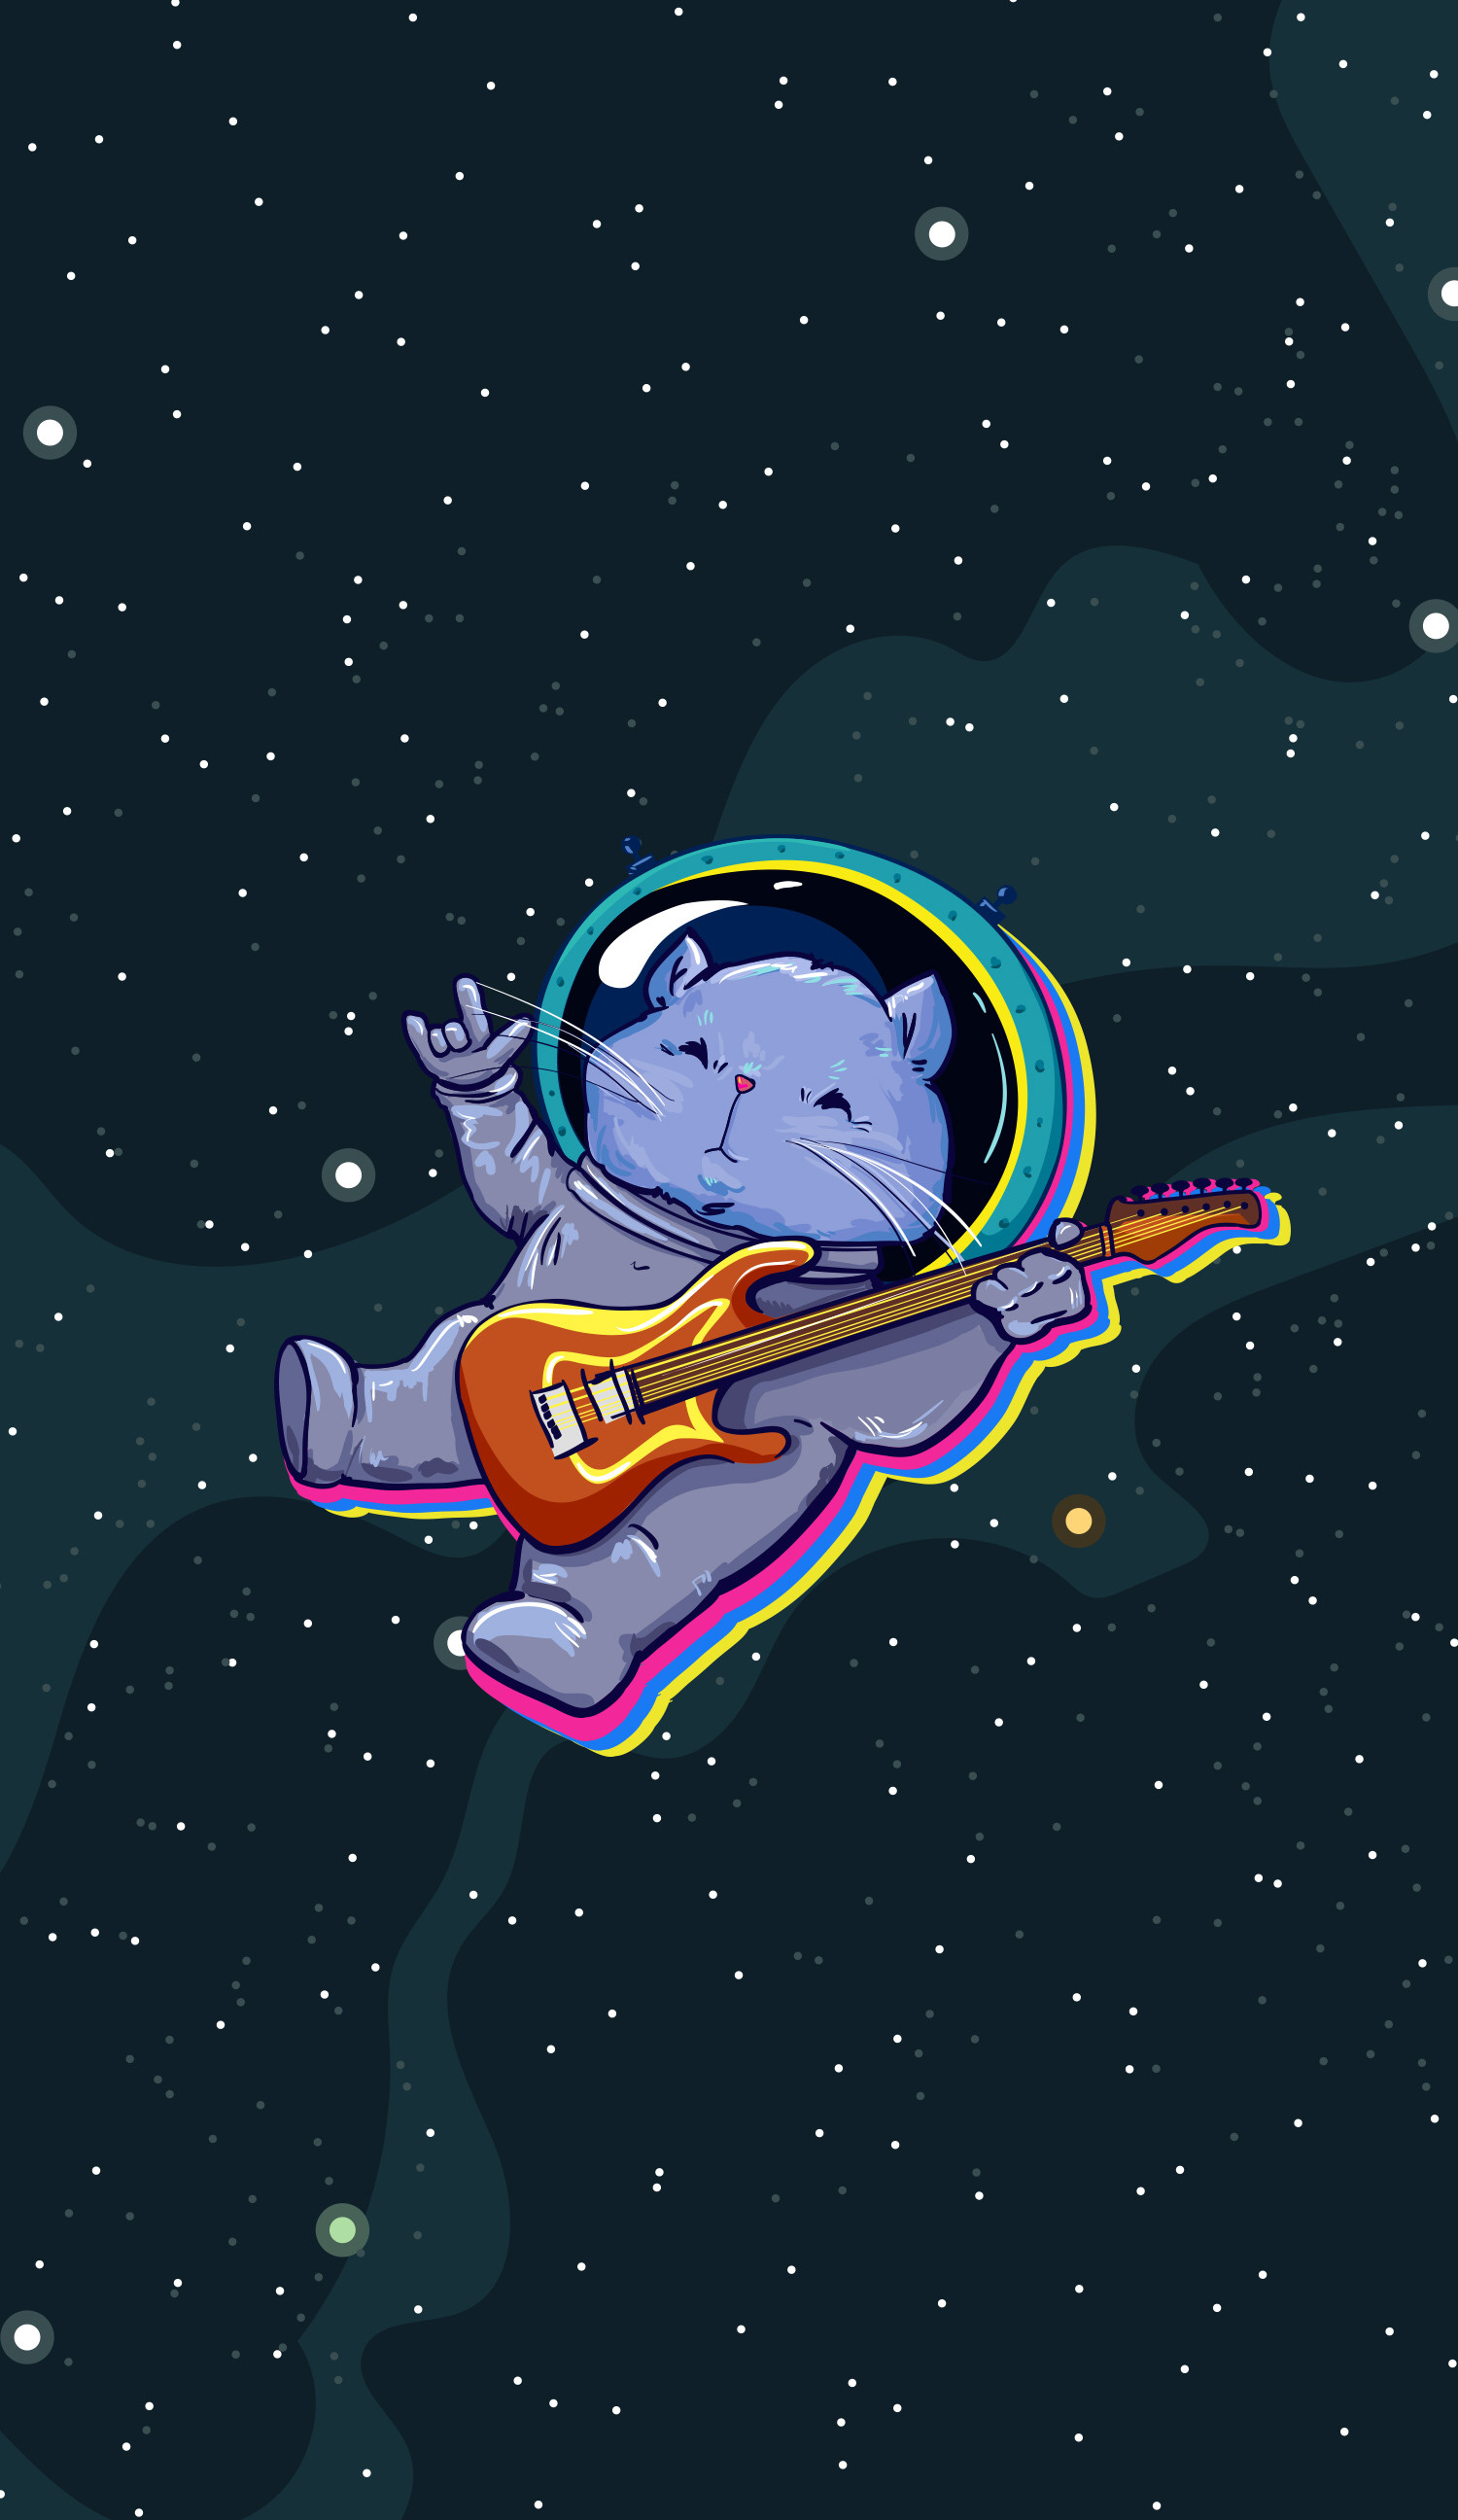 Res: 1500x2592, The astro Cat meow meow